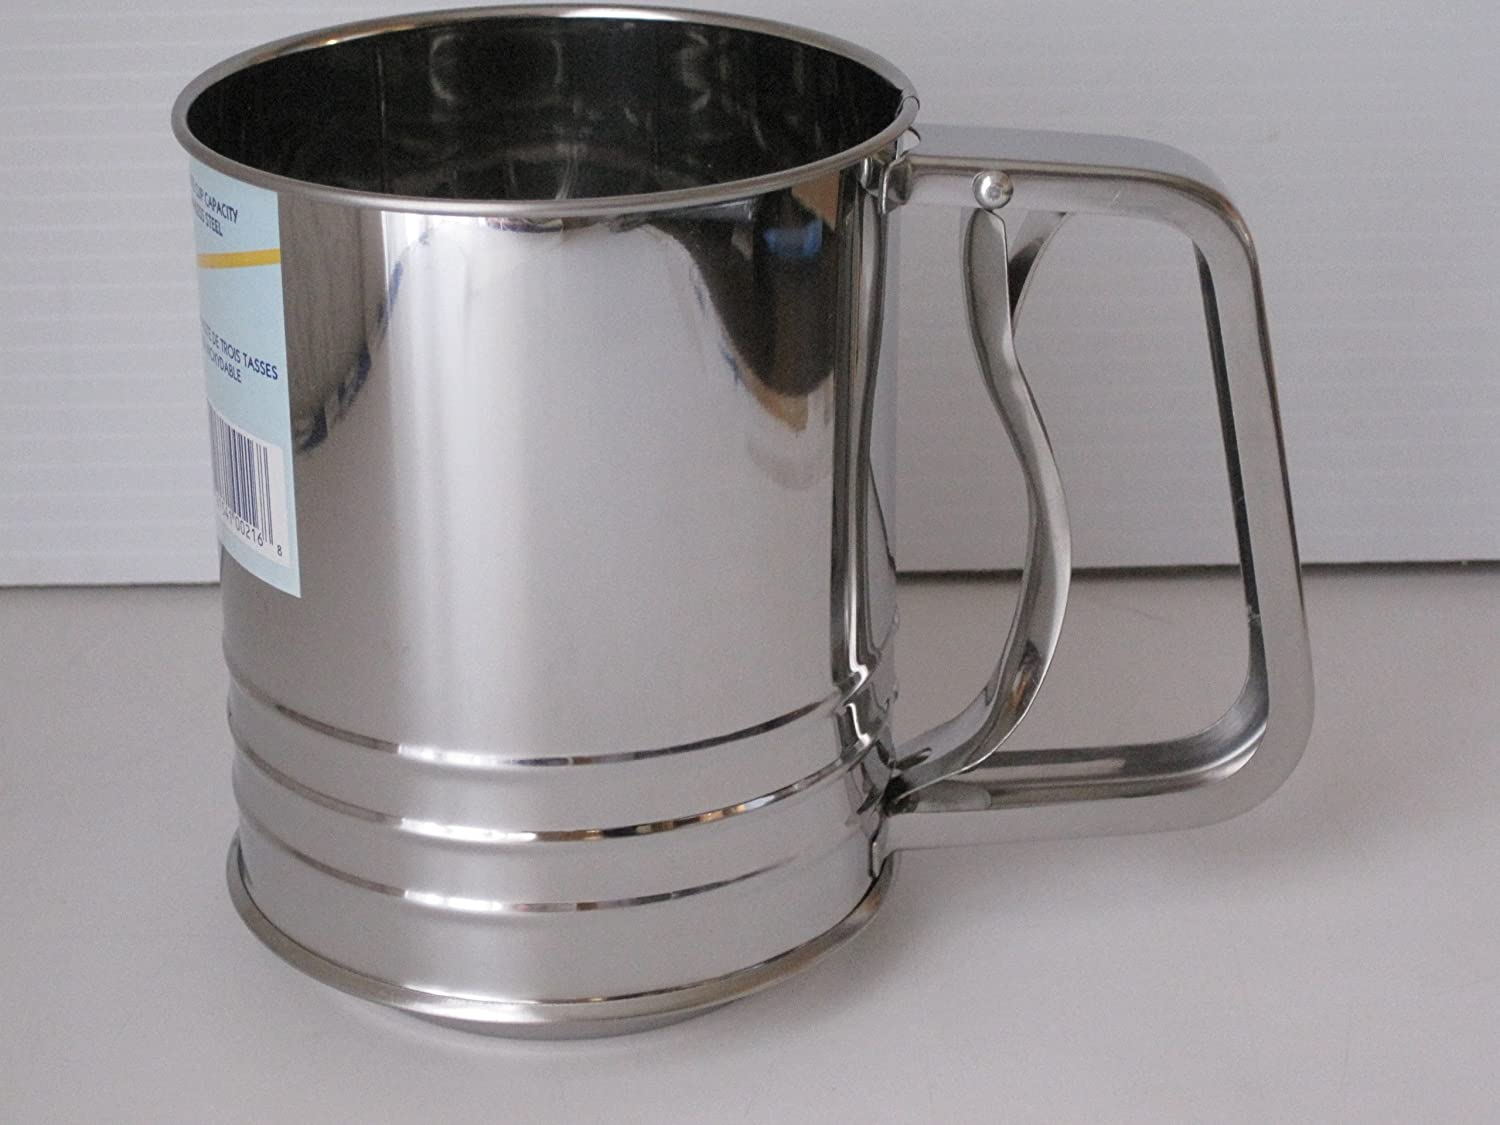 Flour Sifter 3 cup capacity symak